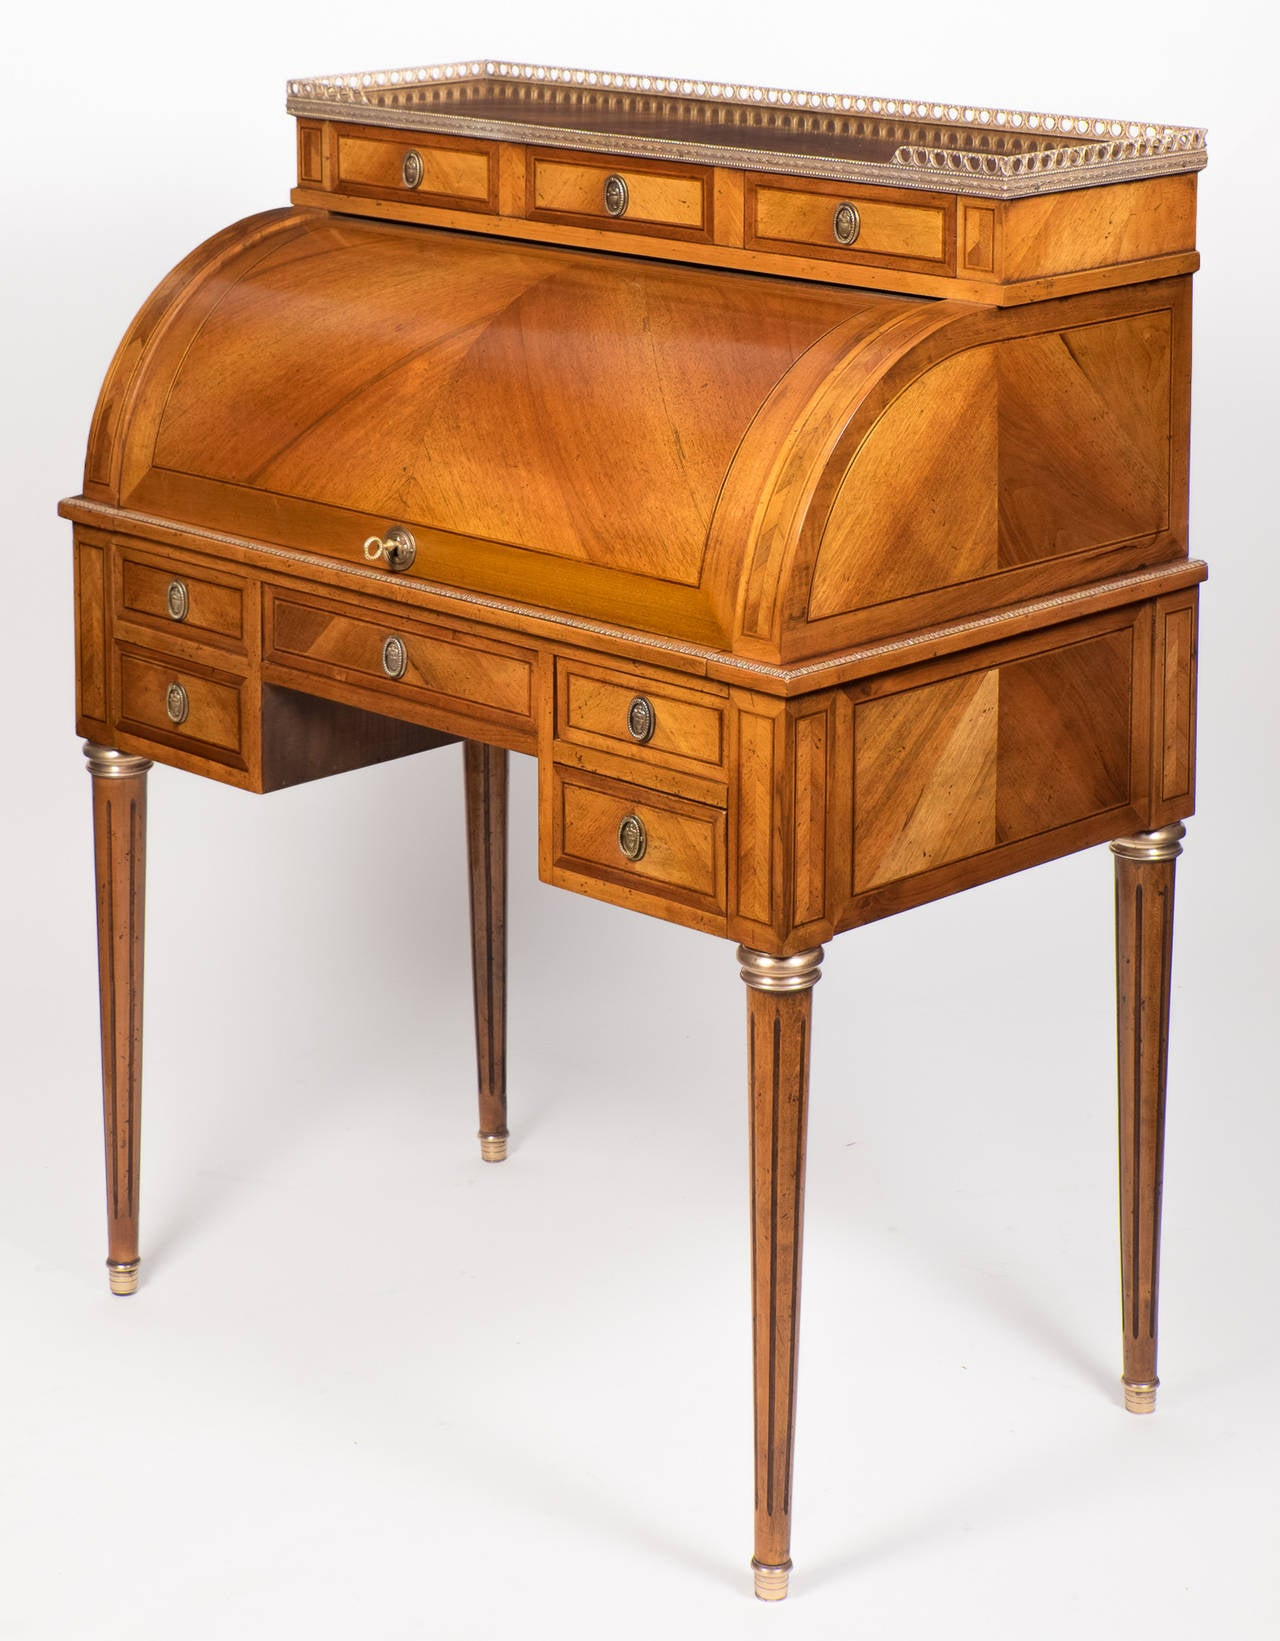 Antique French Louis XVI Cylinder Desk 3 - Antique French Louis XVI Cylinder Desk At 1stdibs